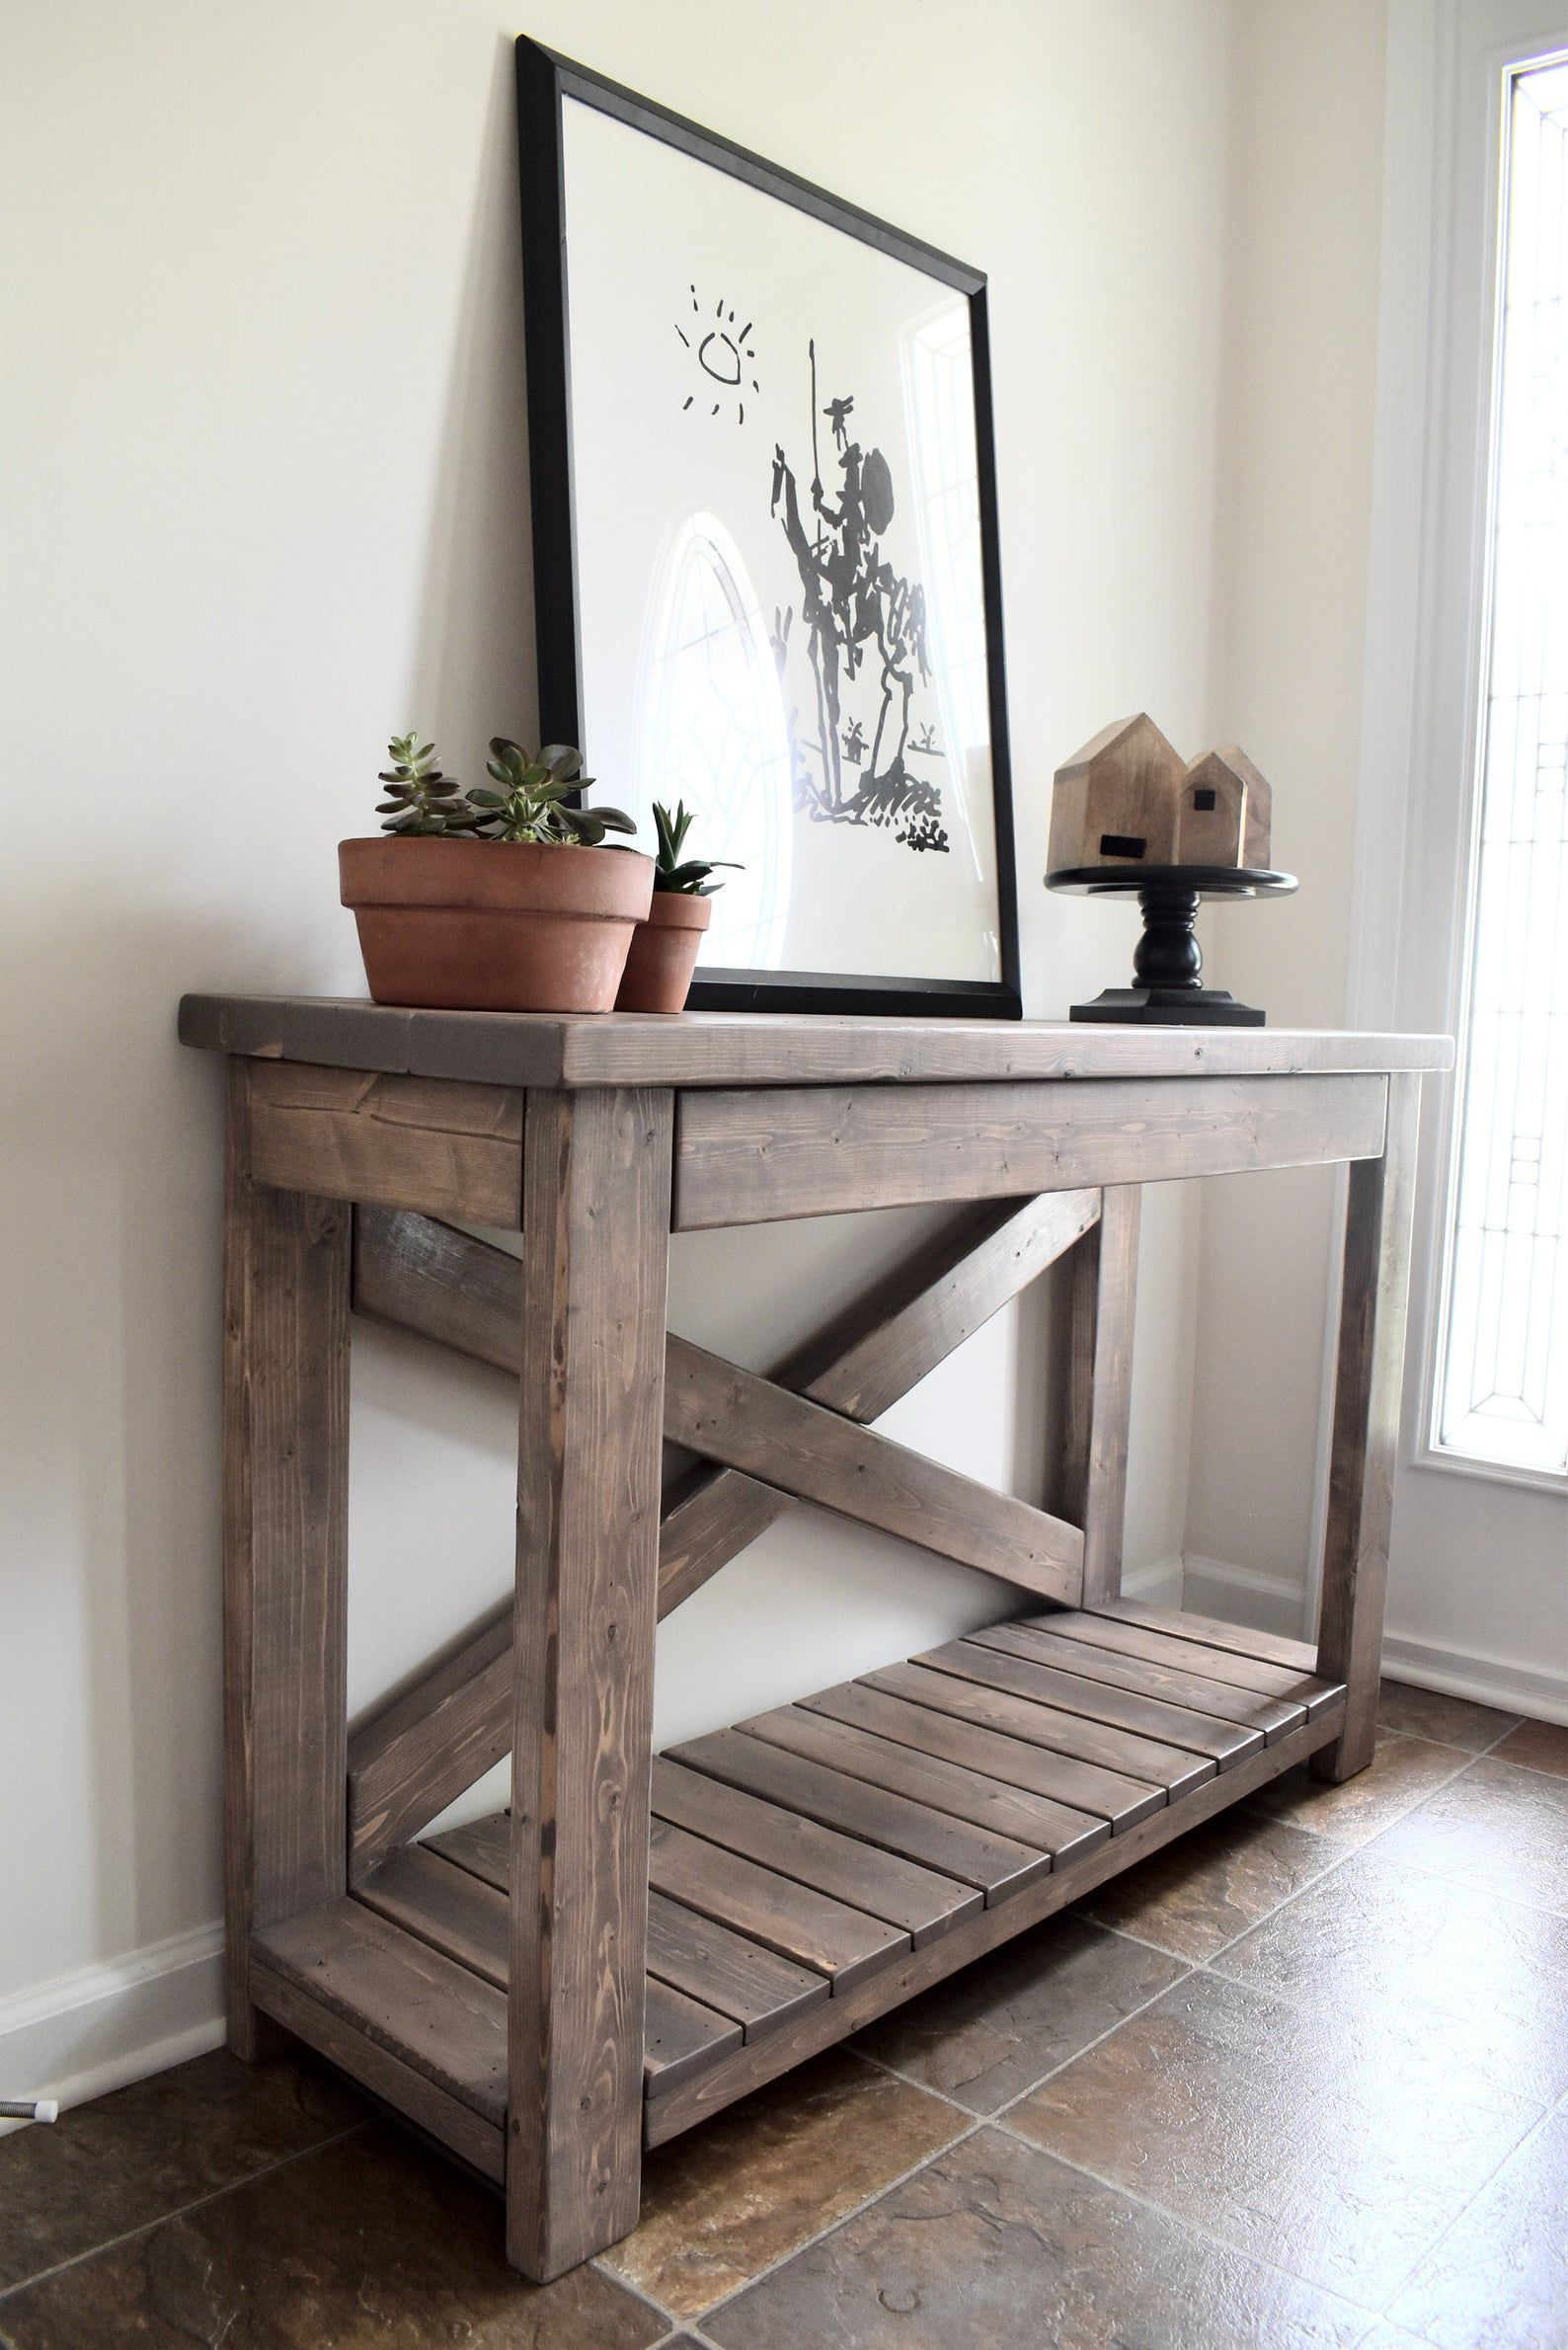 Handcrafted wood rustic console table modern farmhouse in